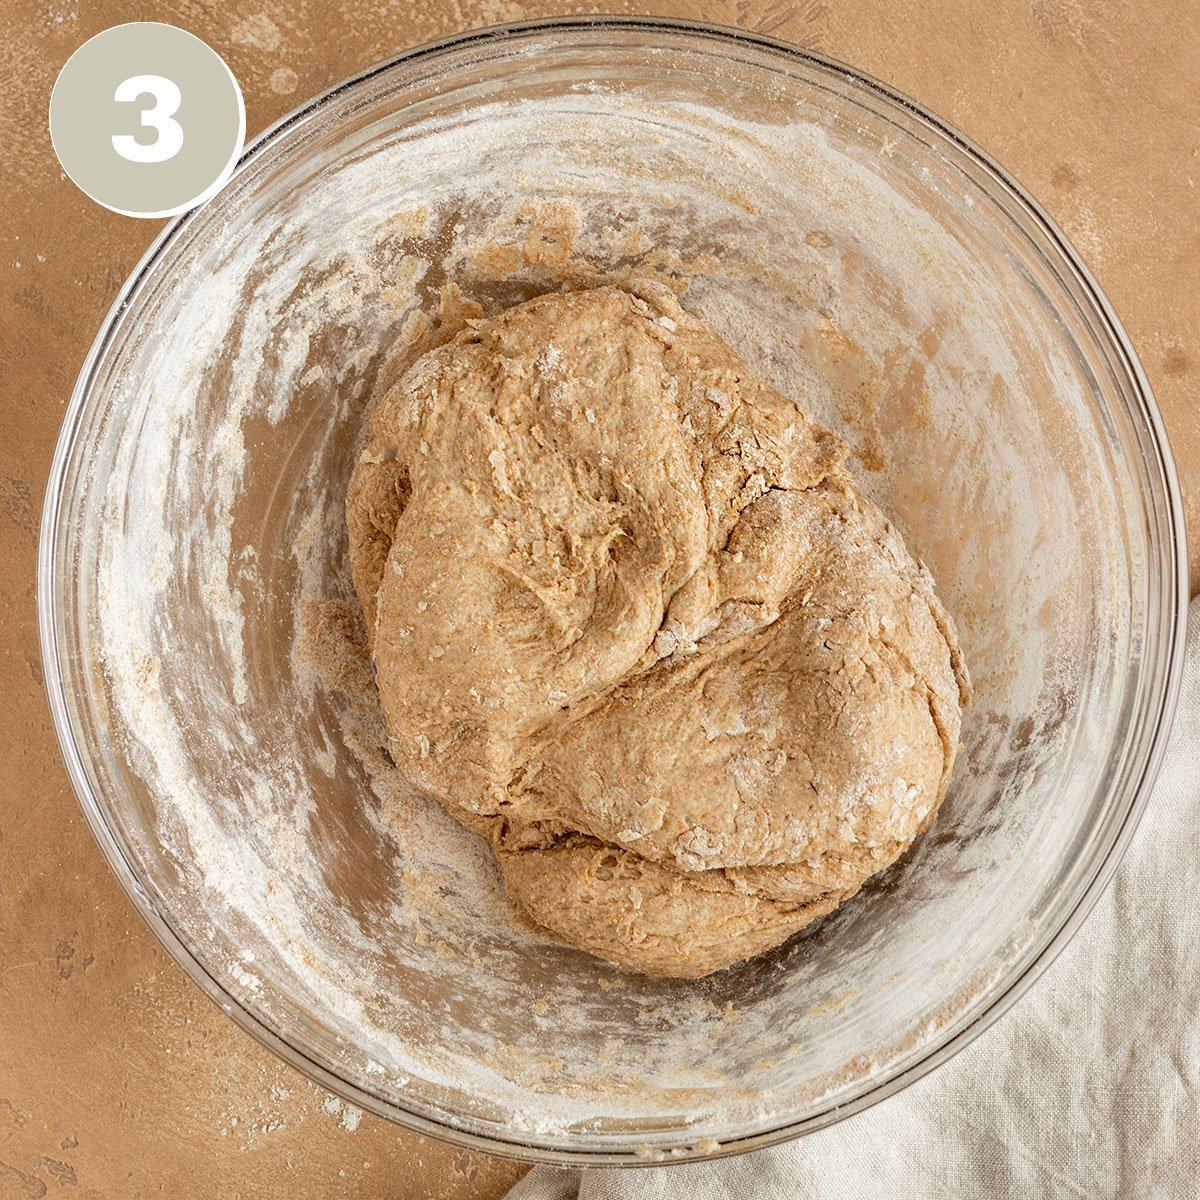 mixing bowl of spelt bread dough before kneading